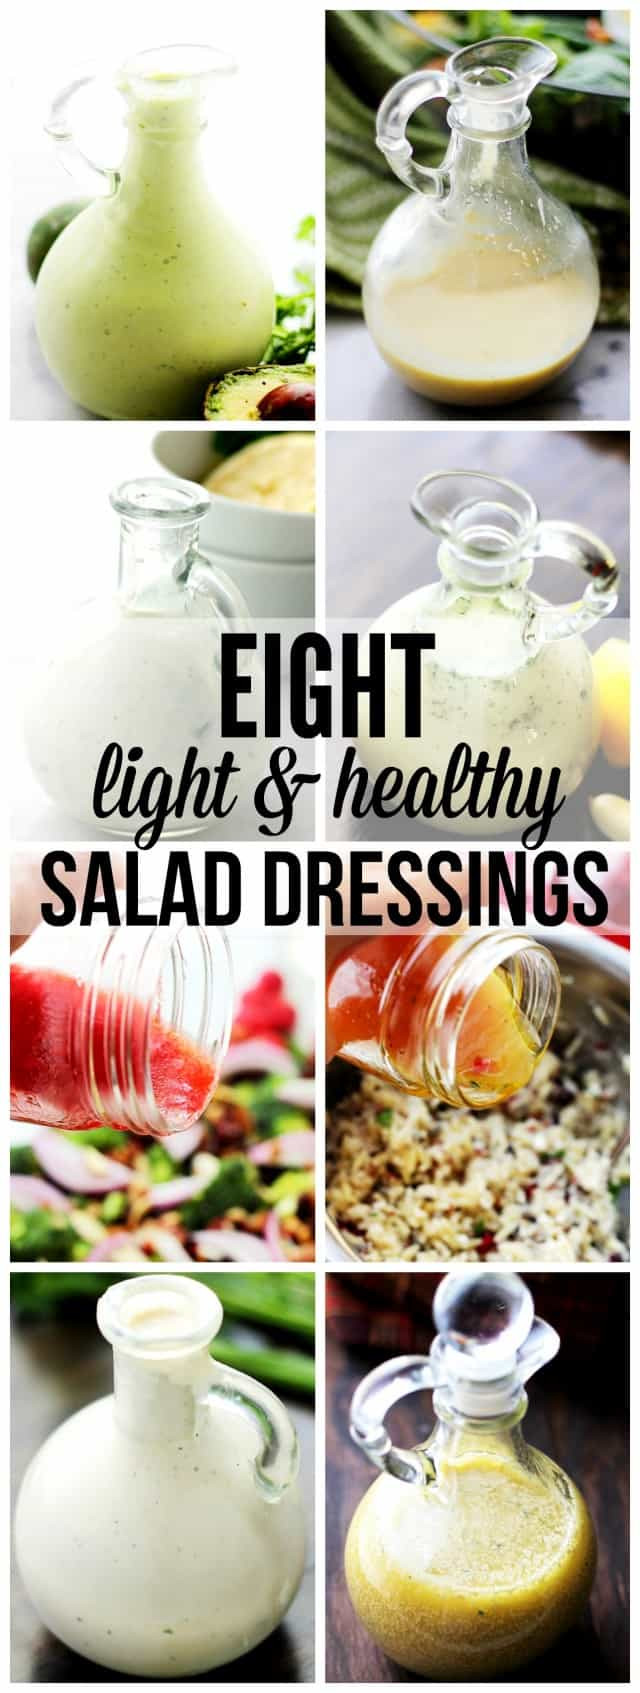 Best ideas about DIY Salad Dressings . Save or Pin Eight Light and Healthy Homemade Salad Dressings Recipes Now.